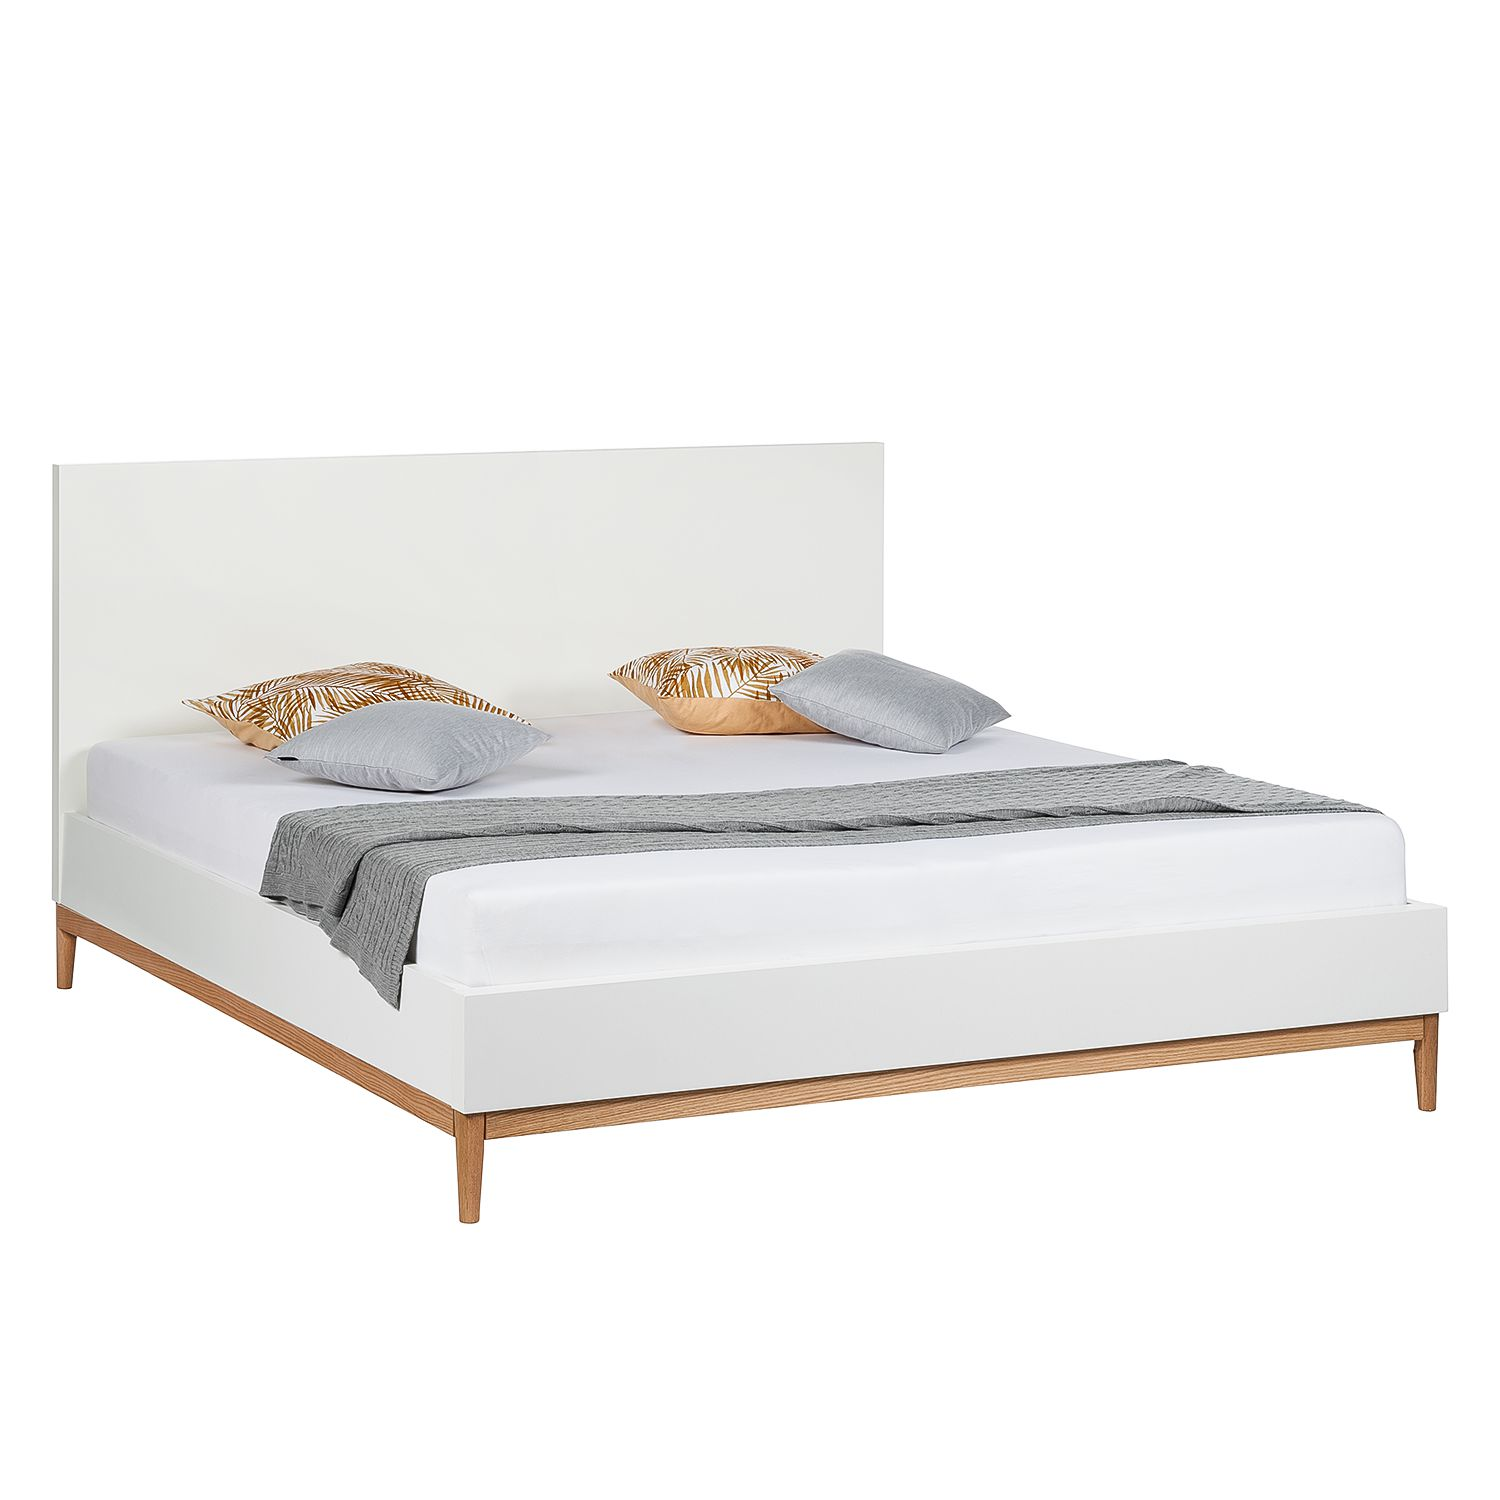 Bed Lindholm I - mat wit - 180 x 200cm, Morteens